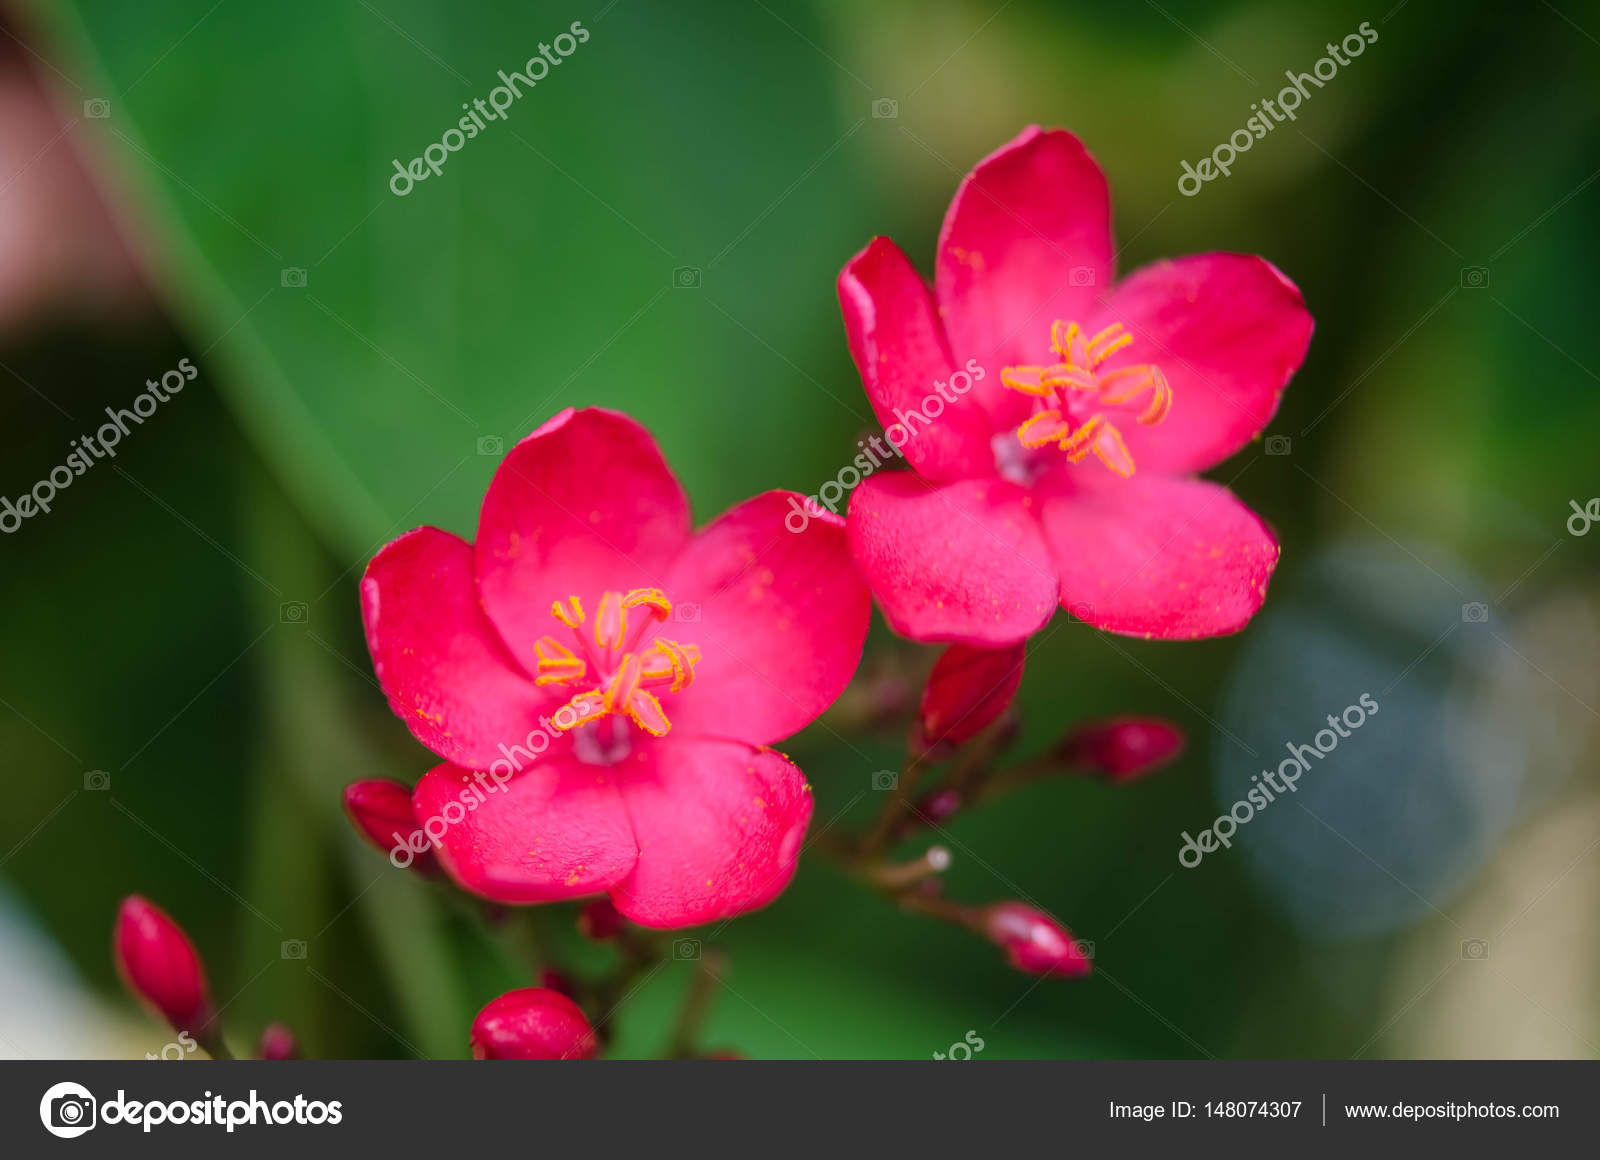 Flowering bushes with pink flowers stock photo soyka564 148074307 flowering bushes with pink flowers stock photo mightylinksfo